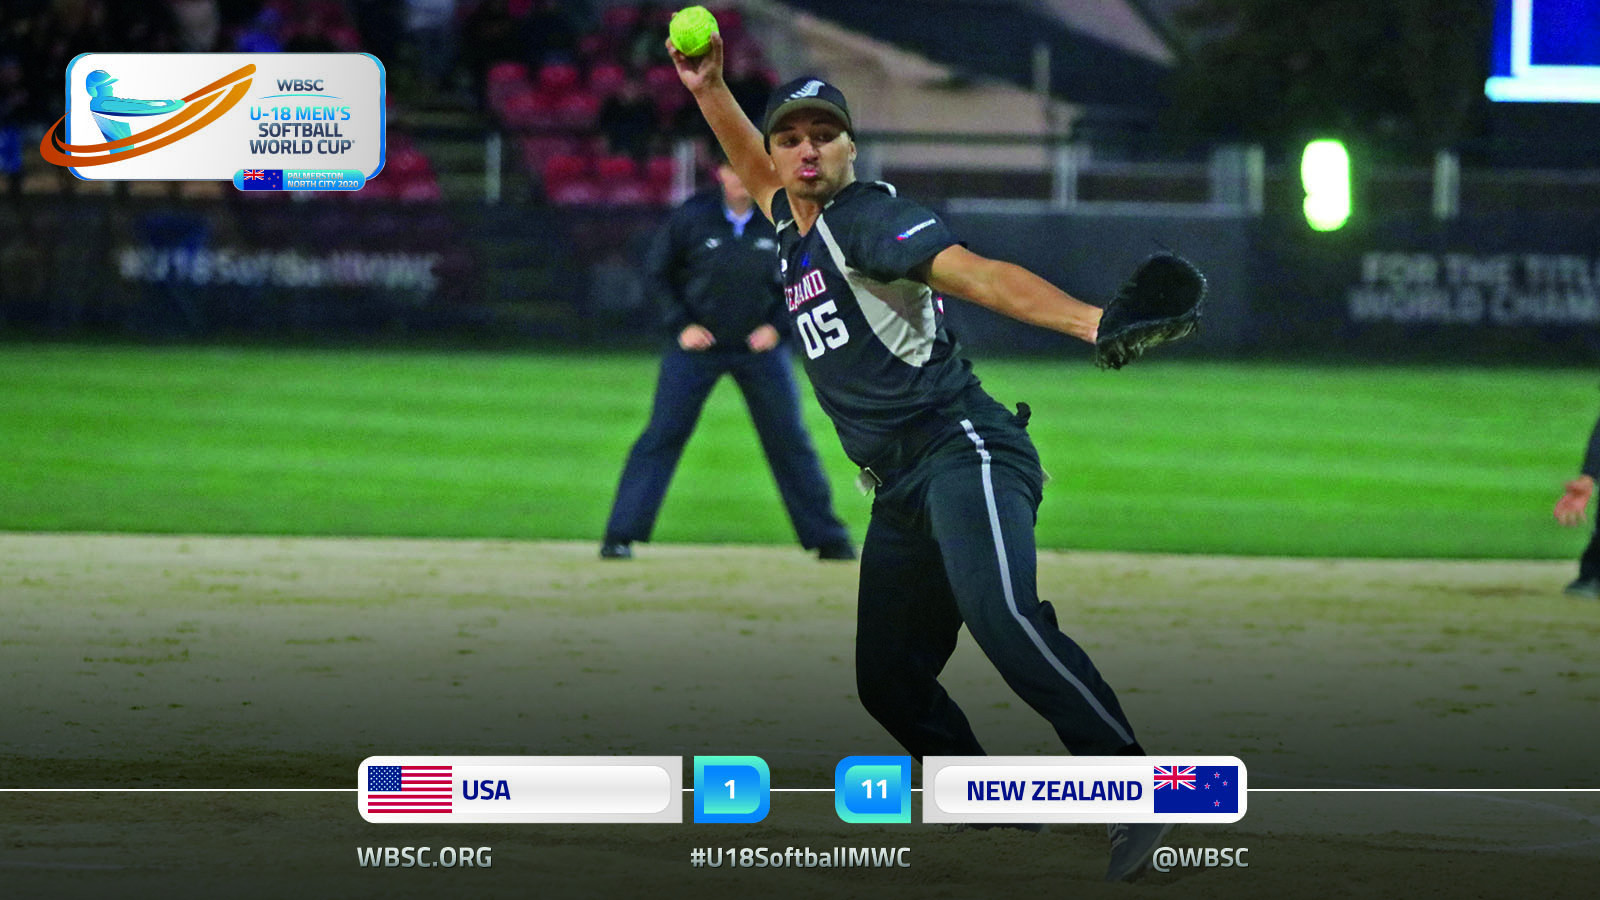 New Zealand were comfortable victors in their match against the US ©WBSC